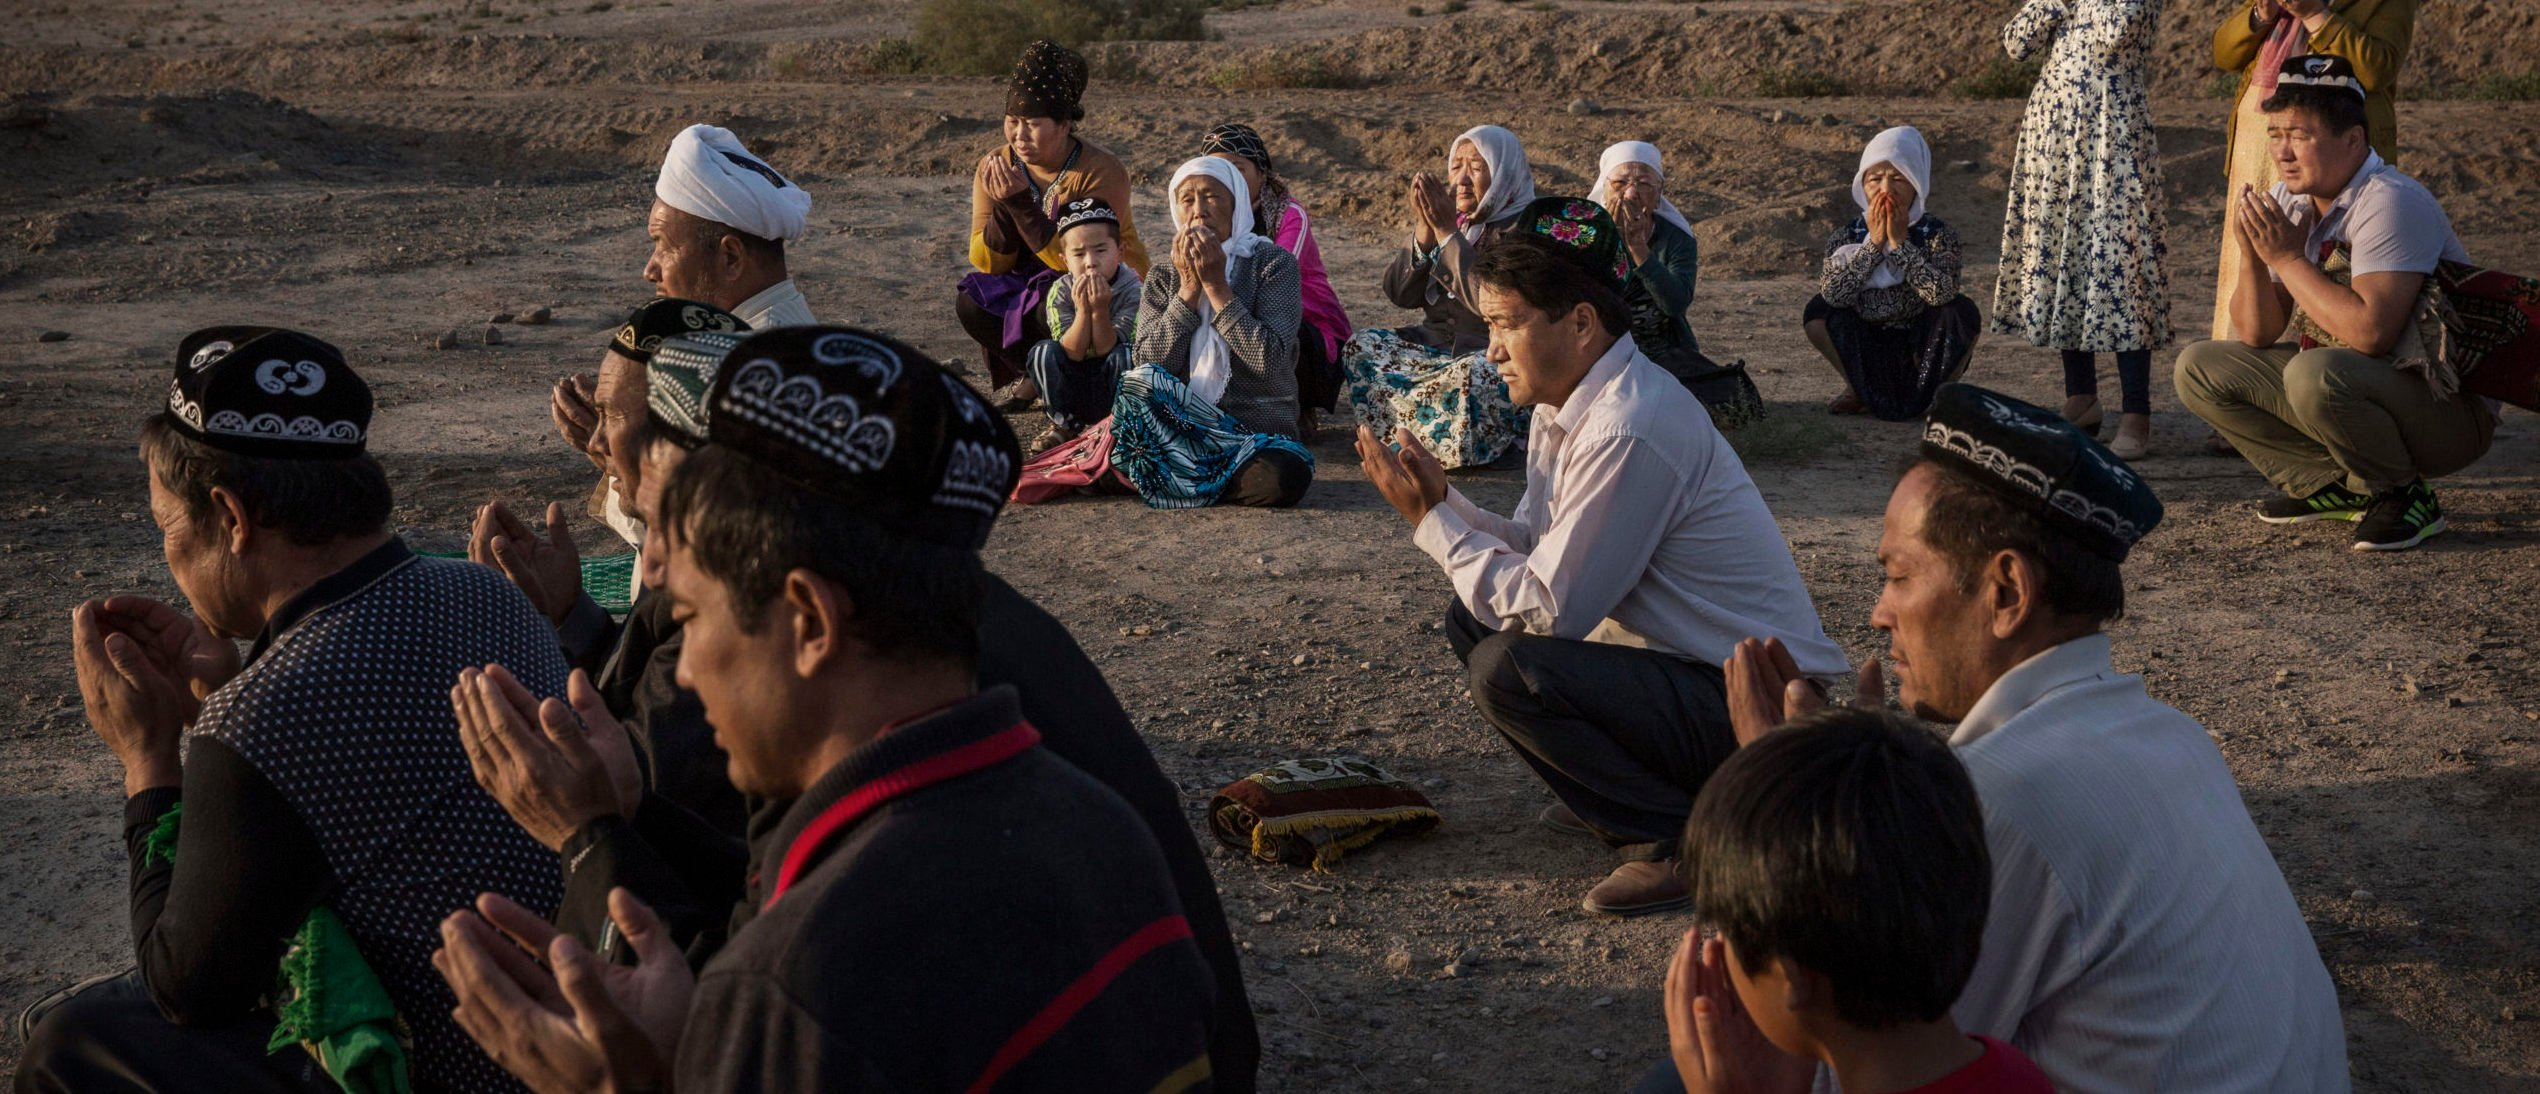 TURPAN, CHINA - SEPTEMBER 12: (CHINA OUT) A Uyghur family pray at the grave of a loved one on the morning of the Corban Festival on September 12, 2016 at a local shrine and cemetery in Turpan County, in the far western Xinjiang province, China.The Corban festival, known to Muslims worldwide as Eid al-Adha or 'feast of the sacrifice', is celebrated by ethnic Uyghurs across Xinjiang, the far-western region of China bordering Central Asia that is home to roughly half of the country's 23 million Muslims. The festival, considered the most important of the year, involves religious rites and visits to the graves of relatives, as well as sharing meals with family. Although Islam is a 'recognized' religion in the constitution of officially atheist China, ethnic Uyghurs are subjected to restrictions on religious and cultural practices that are imposed by China's Communist Party. Ethnic tensions have fueled violence that Chinese authorities point to as justification for the restrictions. (Photo by Kevin Frayer/Getty Images)